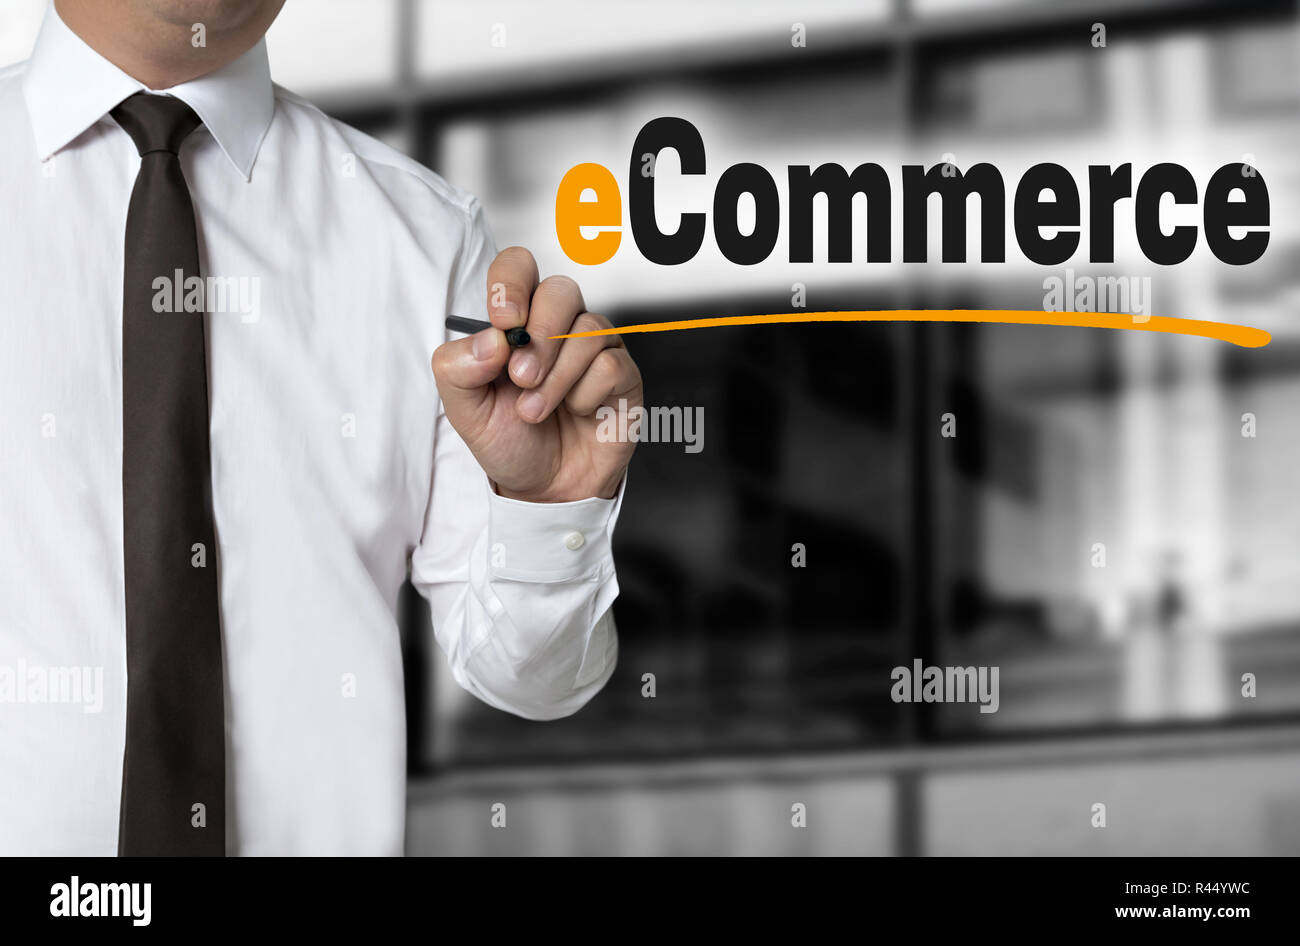 ecommerce is written by businessman background concept - Stock Image